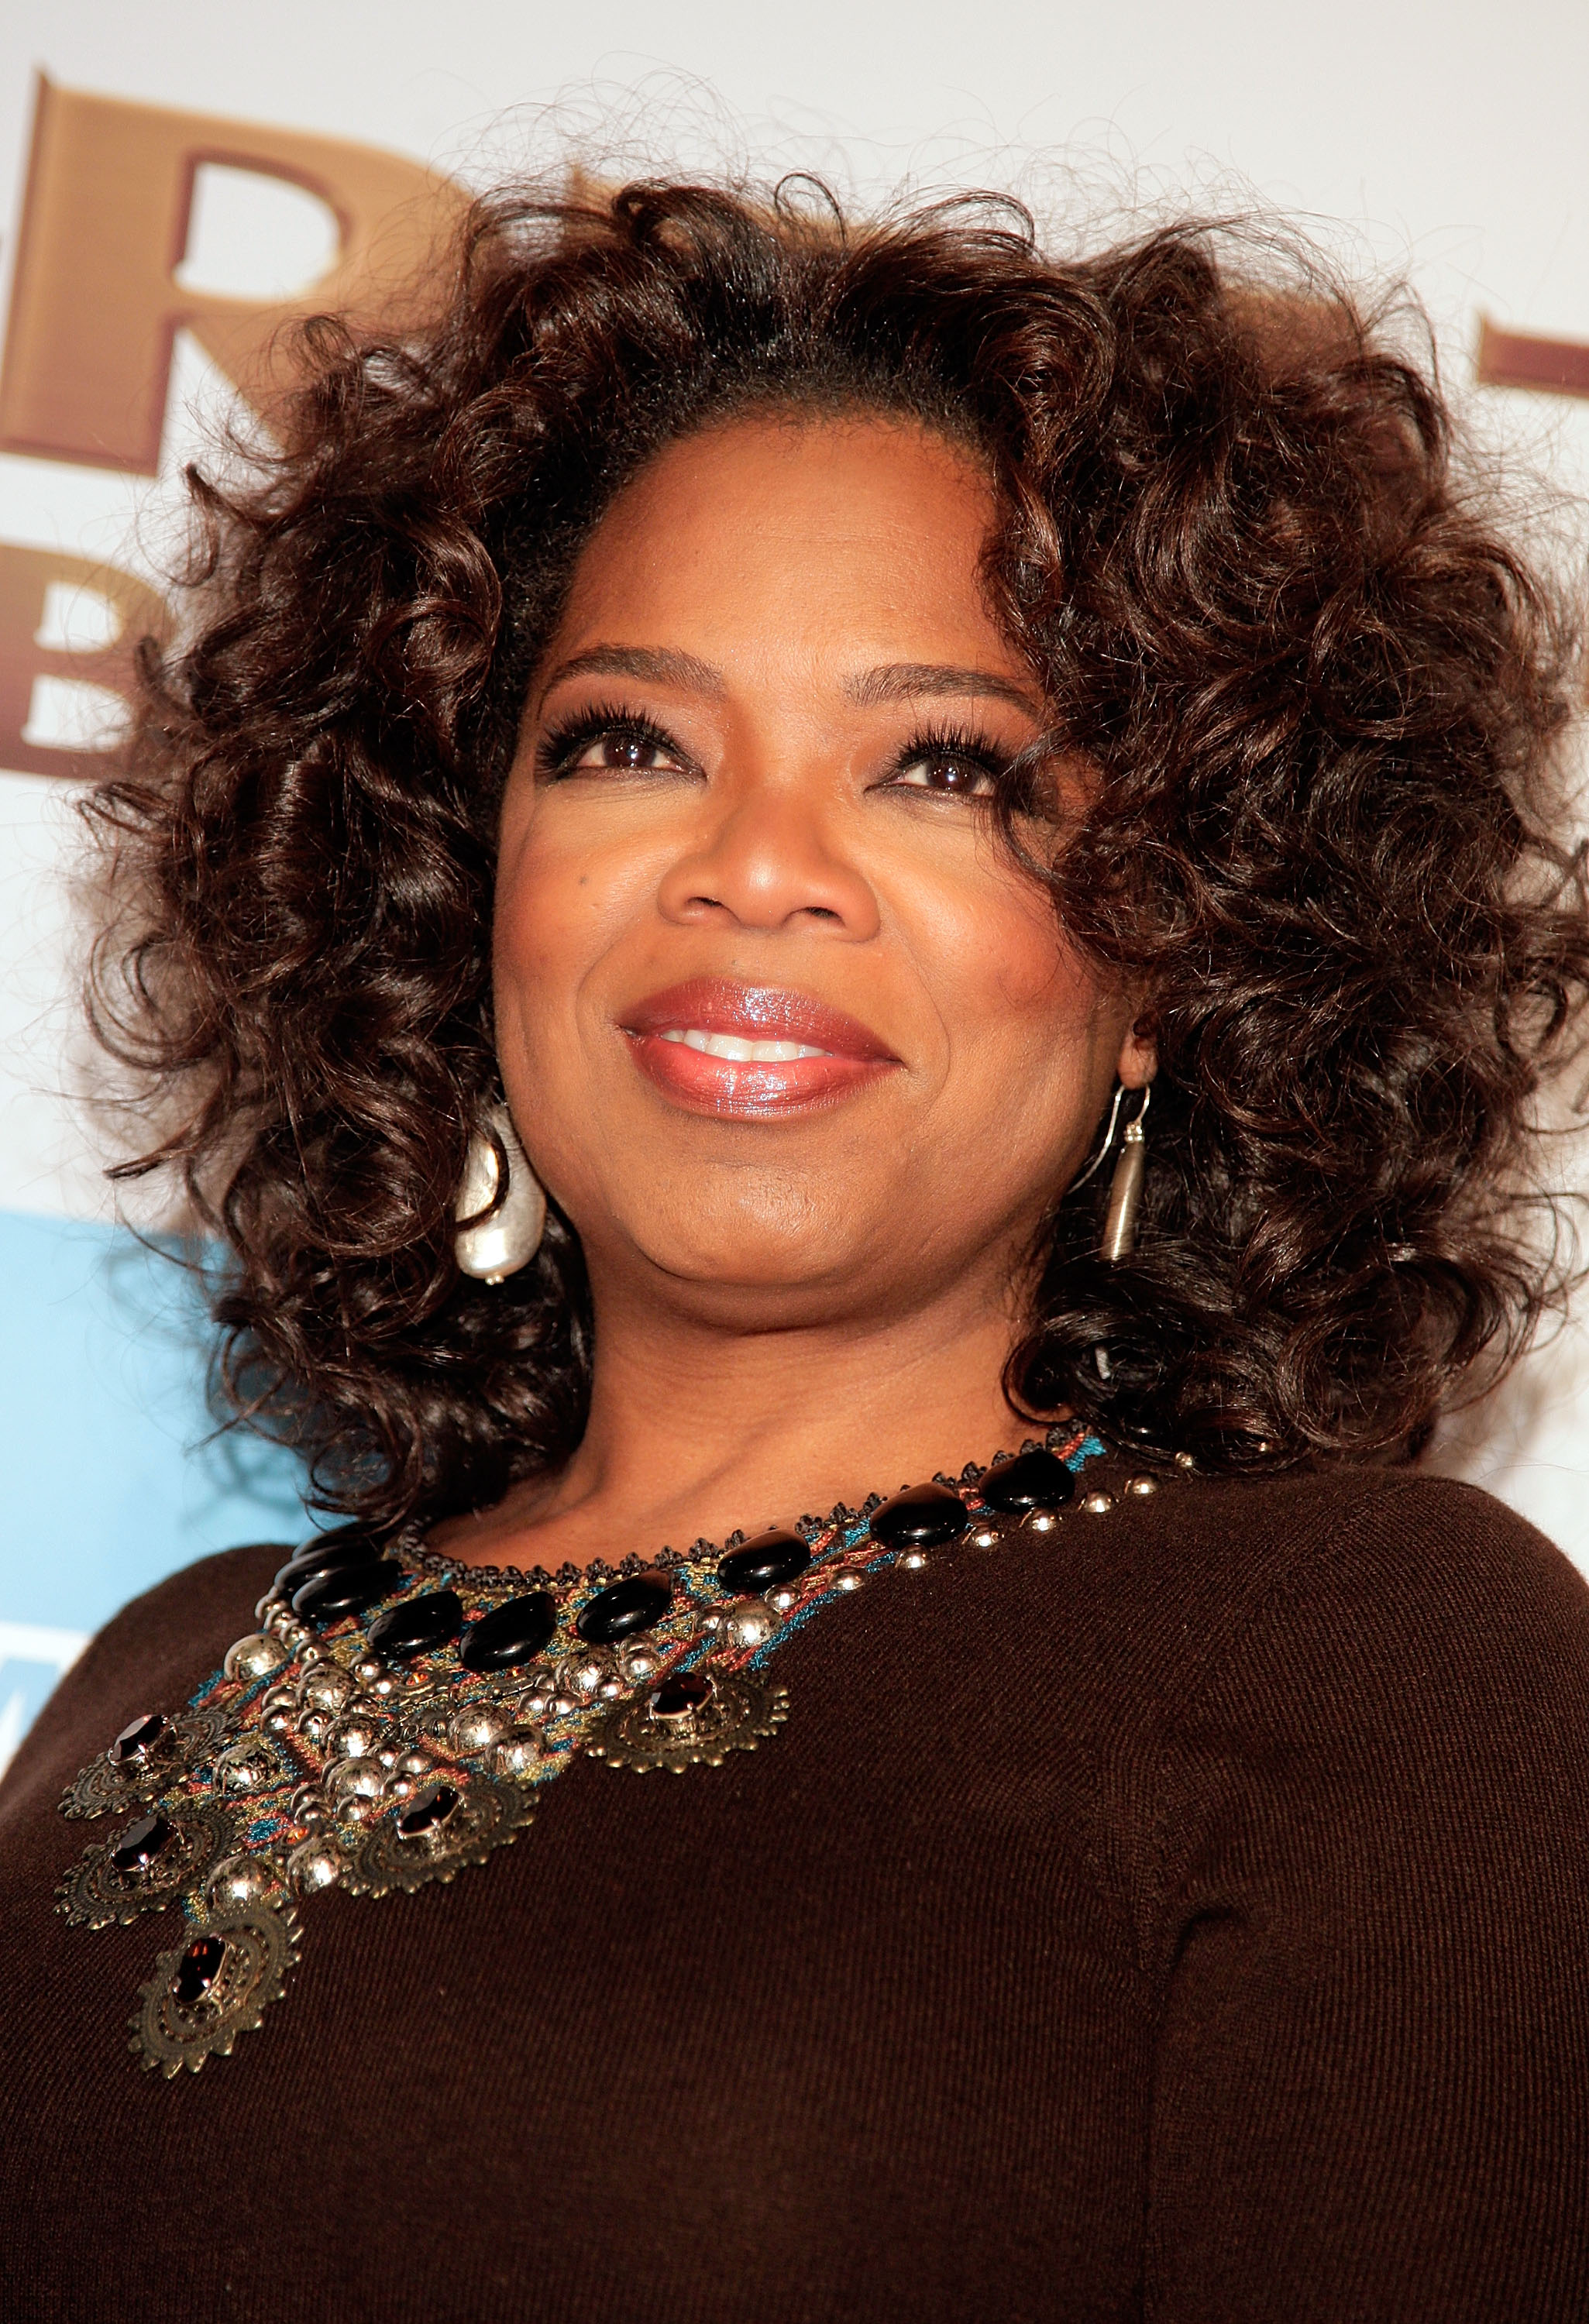 QUOTE:  Oprah Winfrey